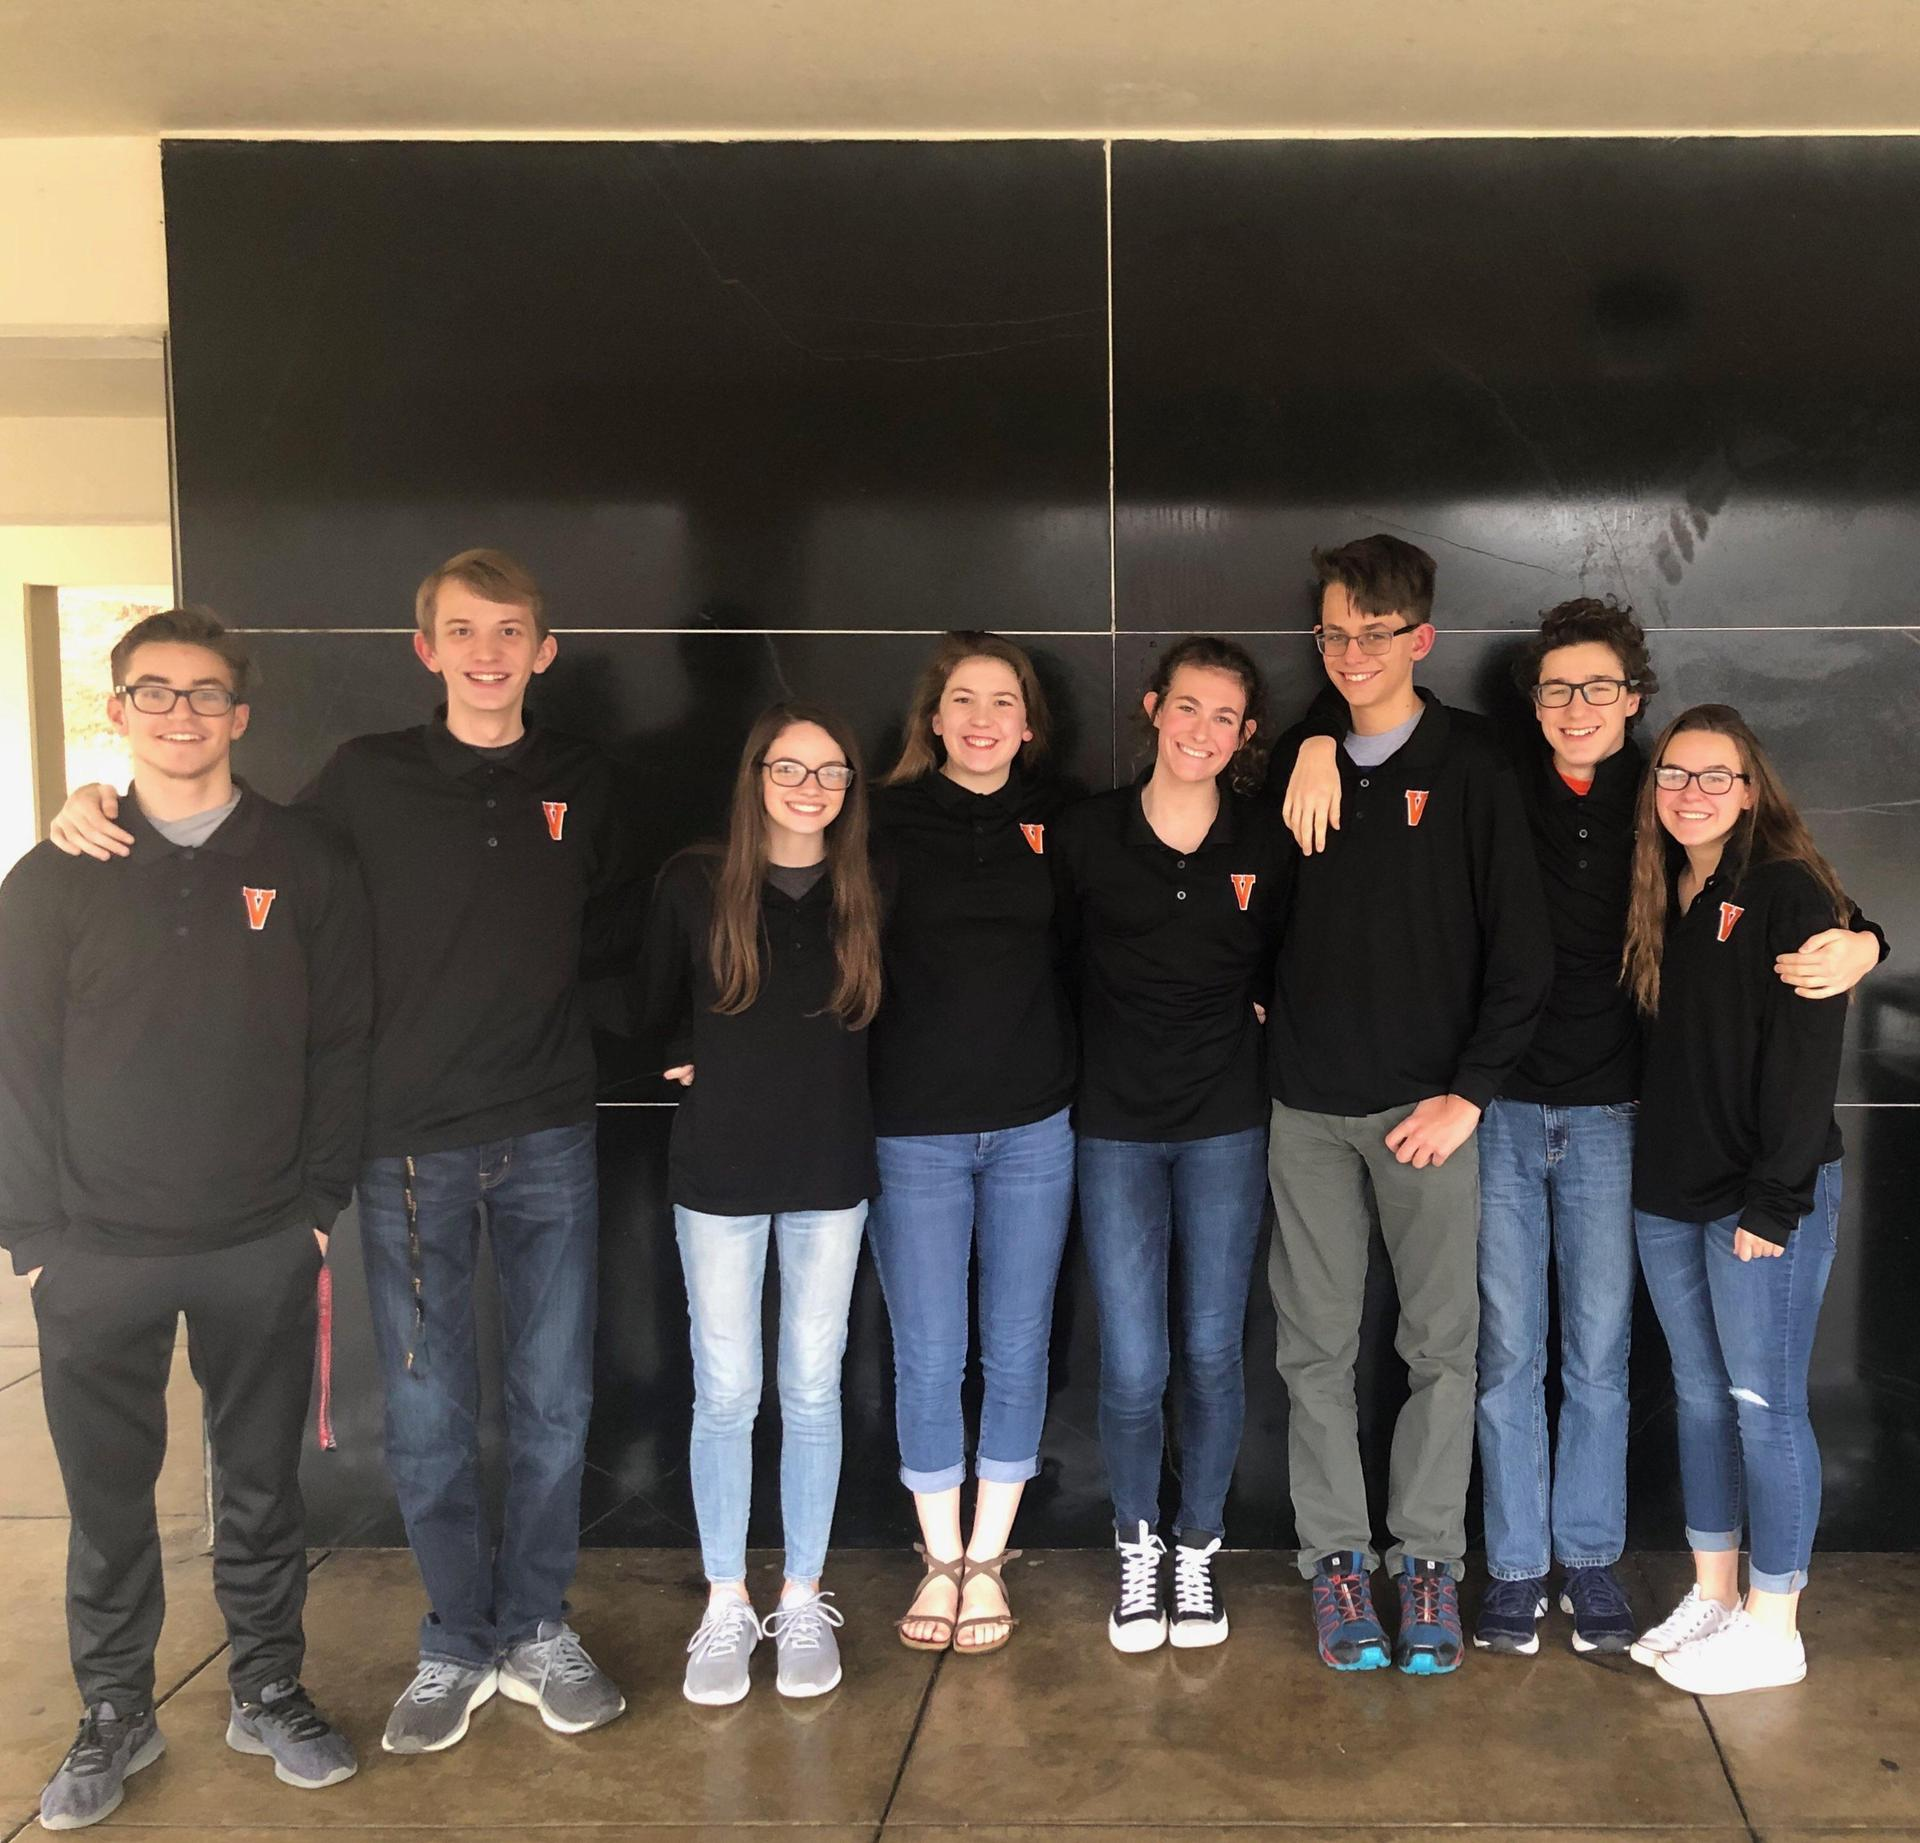 The VHS Scholastic Bowl team took first place at the VHSL District Tournament on January 19th at Southwest Virginia Community College in Cedar Bluff: (l-r) Brayden Wilson, Chandler Bowman, Lucy Heffinger (captain), Ridley Little, Amelia Austin, Bryce Cheers, Aaron Van Nostrand, and Madison Harosky. Lucy also qualified for All-District.  The team will go to Regionals on February 2nd. Go, Bearcats!!!